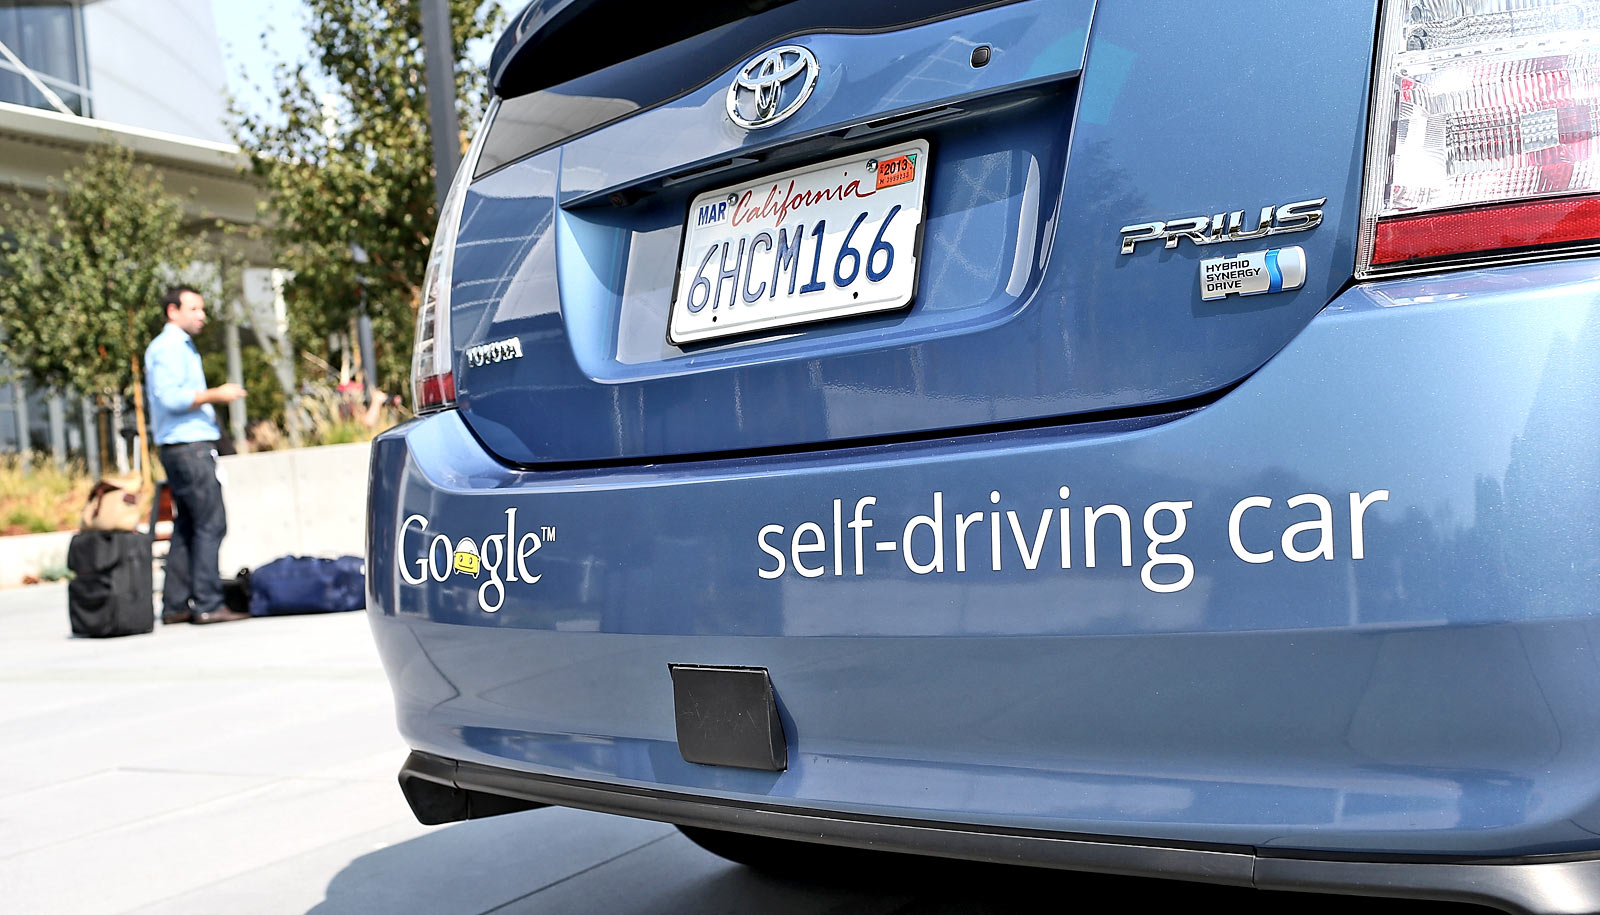 Self-driving cars could make for more pollution